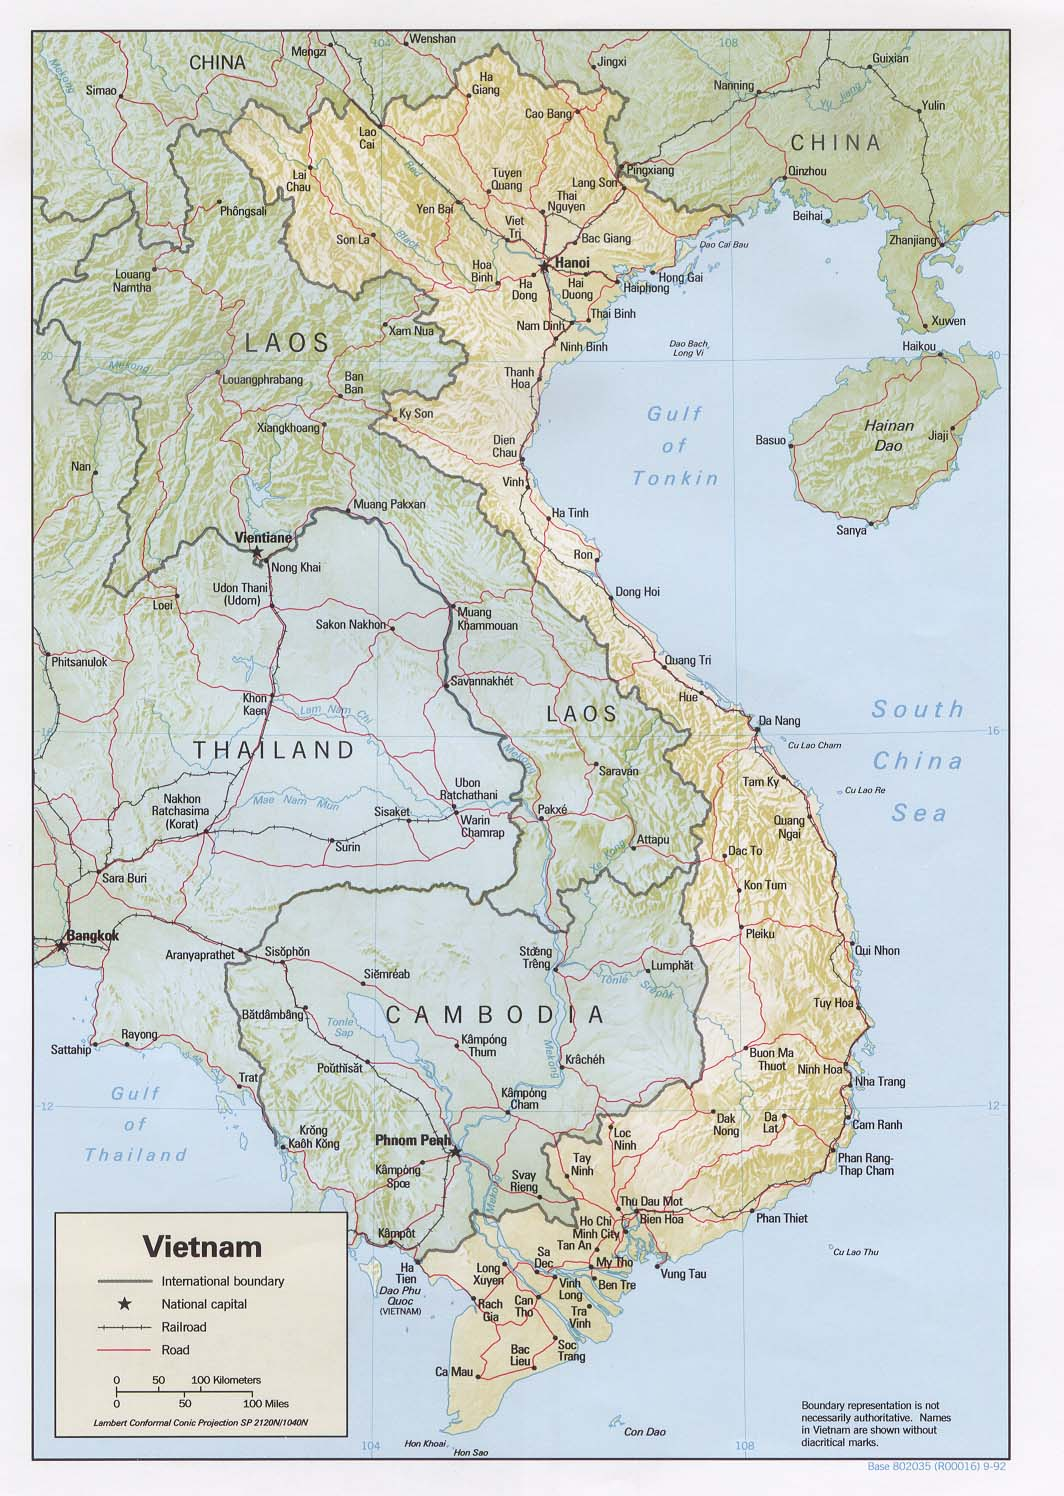 Mapa de Relieve Sombreado de Vietnam